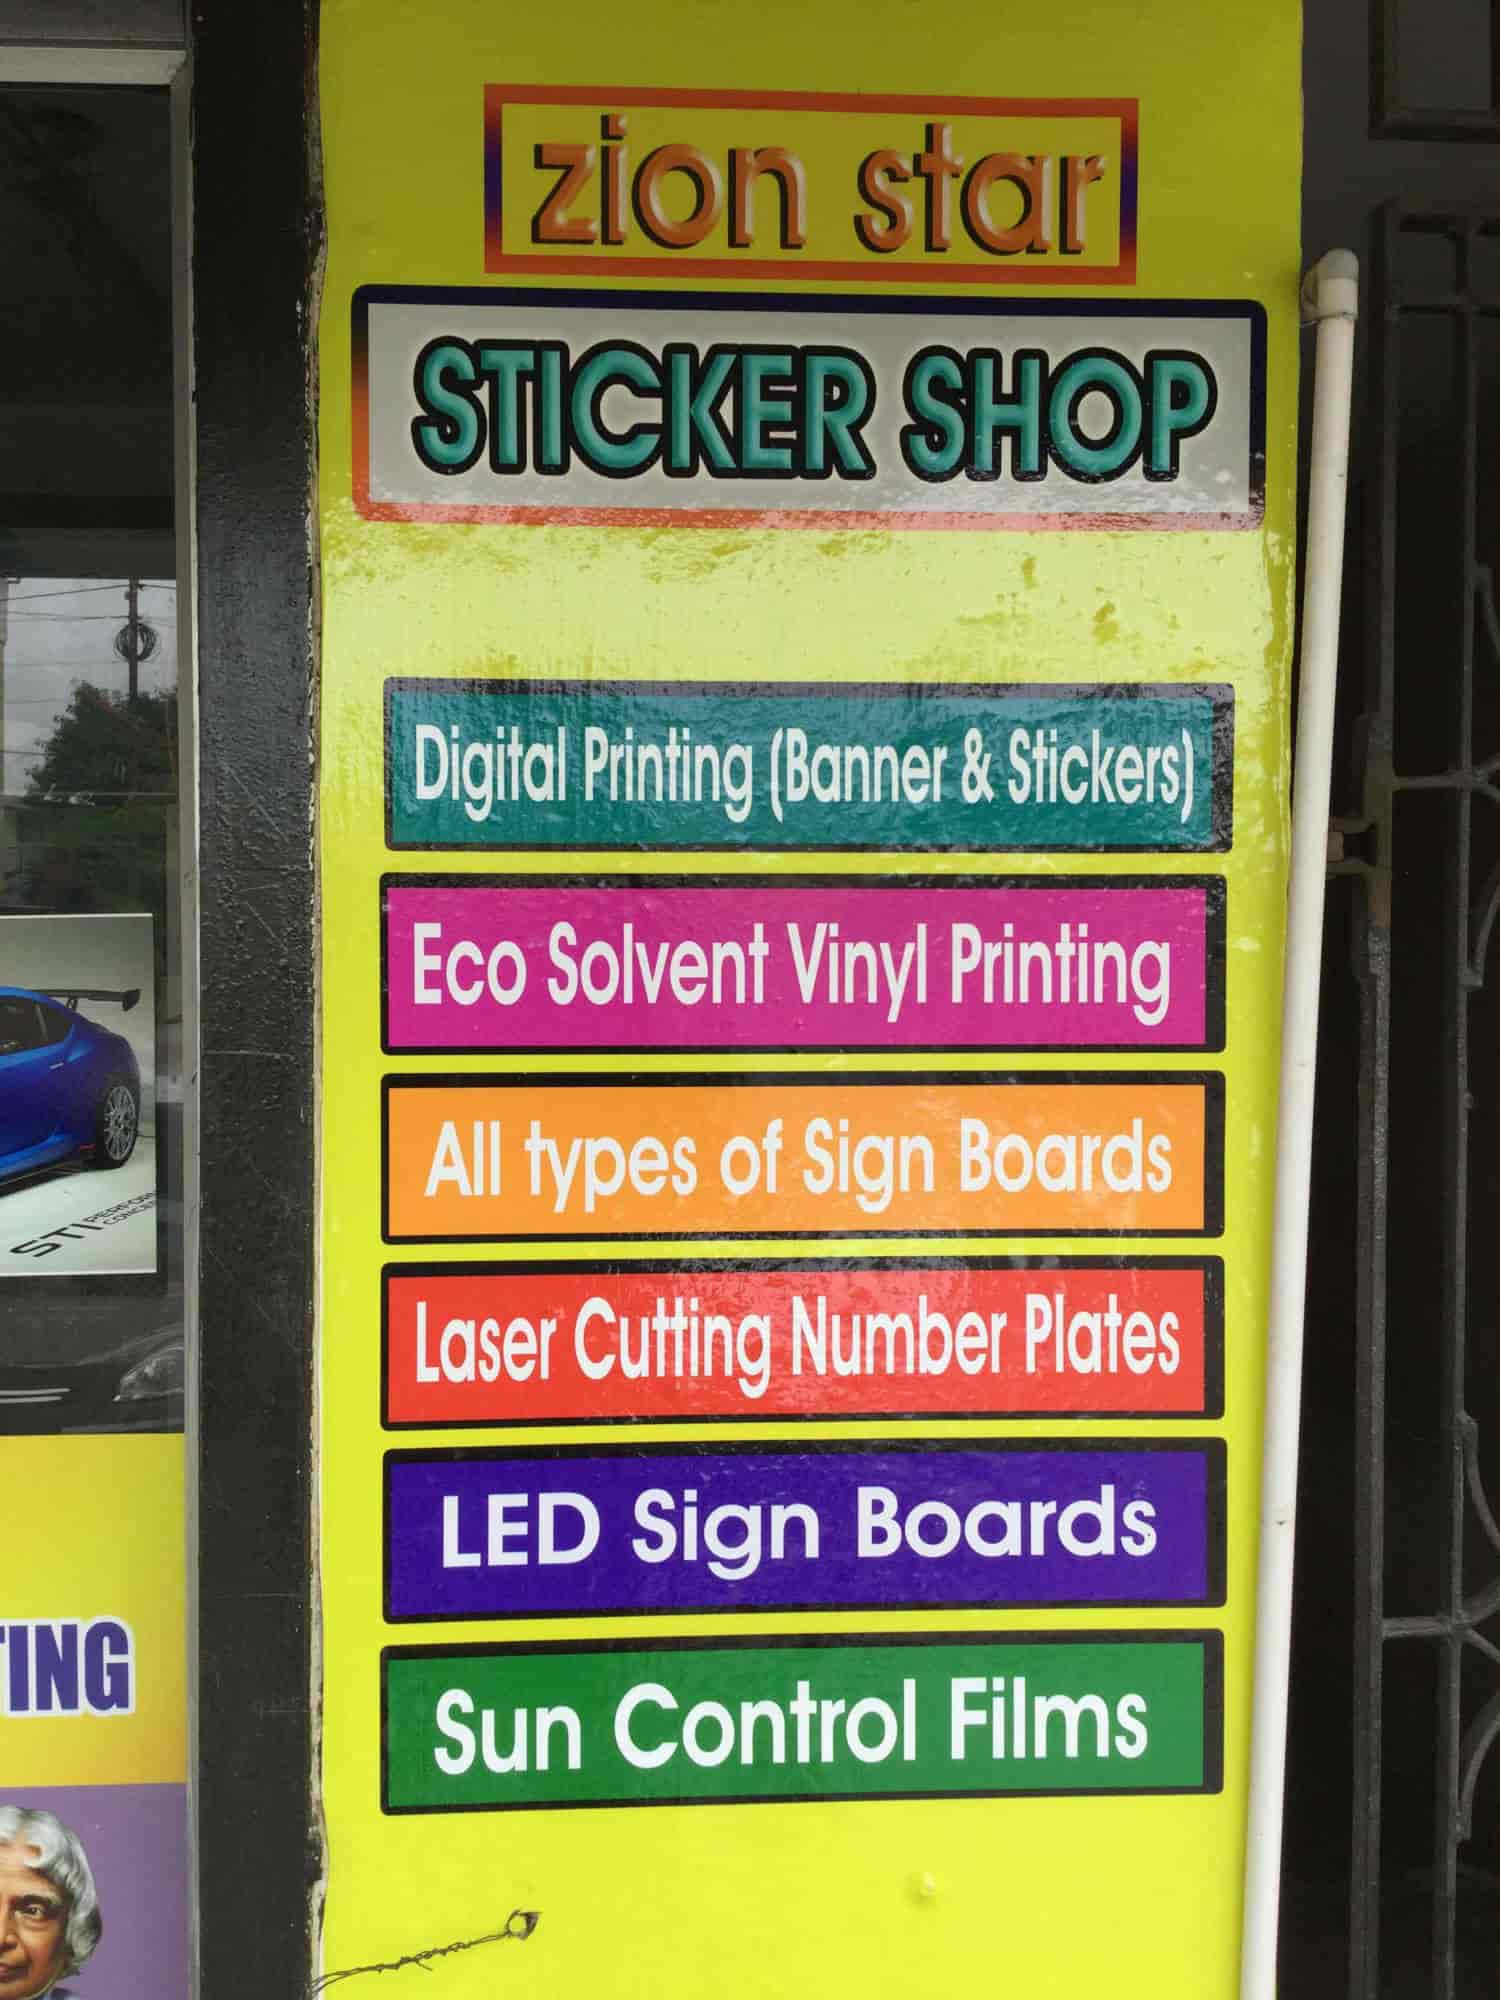 Zion star digitalprinting and stickers tambaram west building contractors in chennai justdial